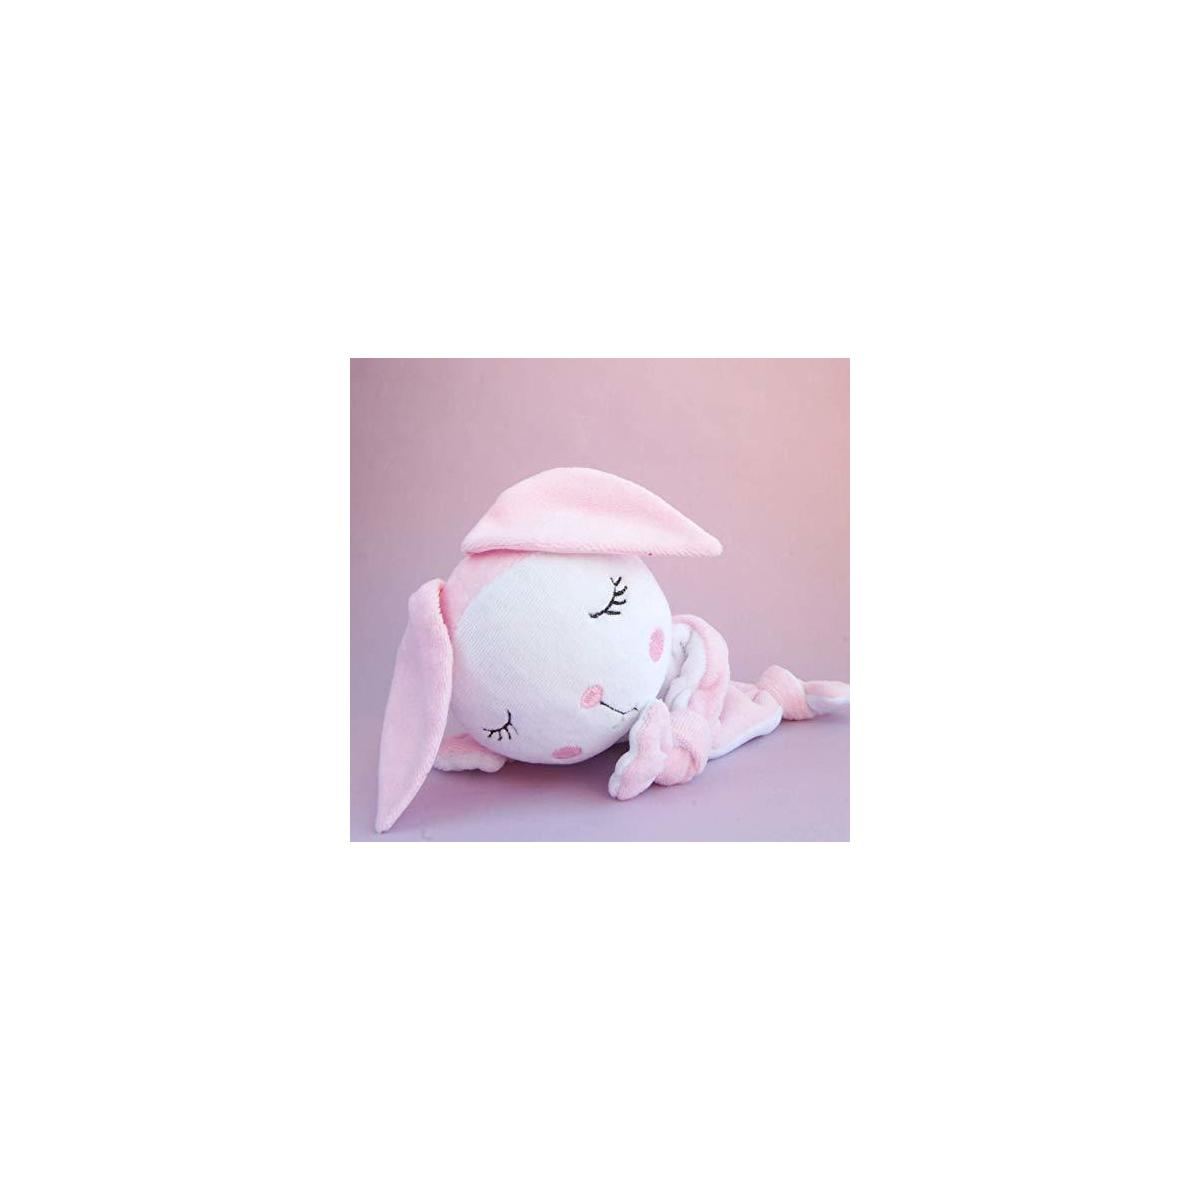 Bunny Baby Security Blanket Comforter Lovey Pink Animal Plush